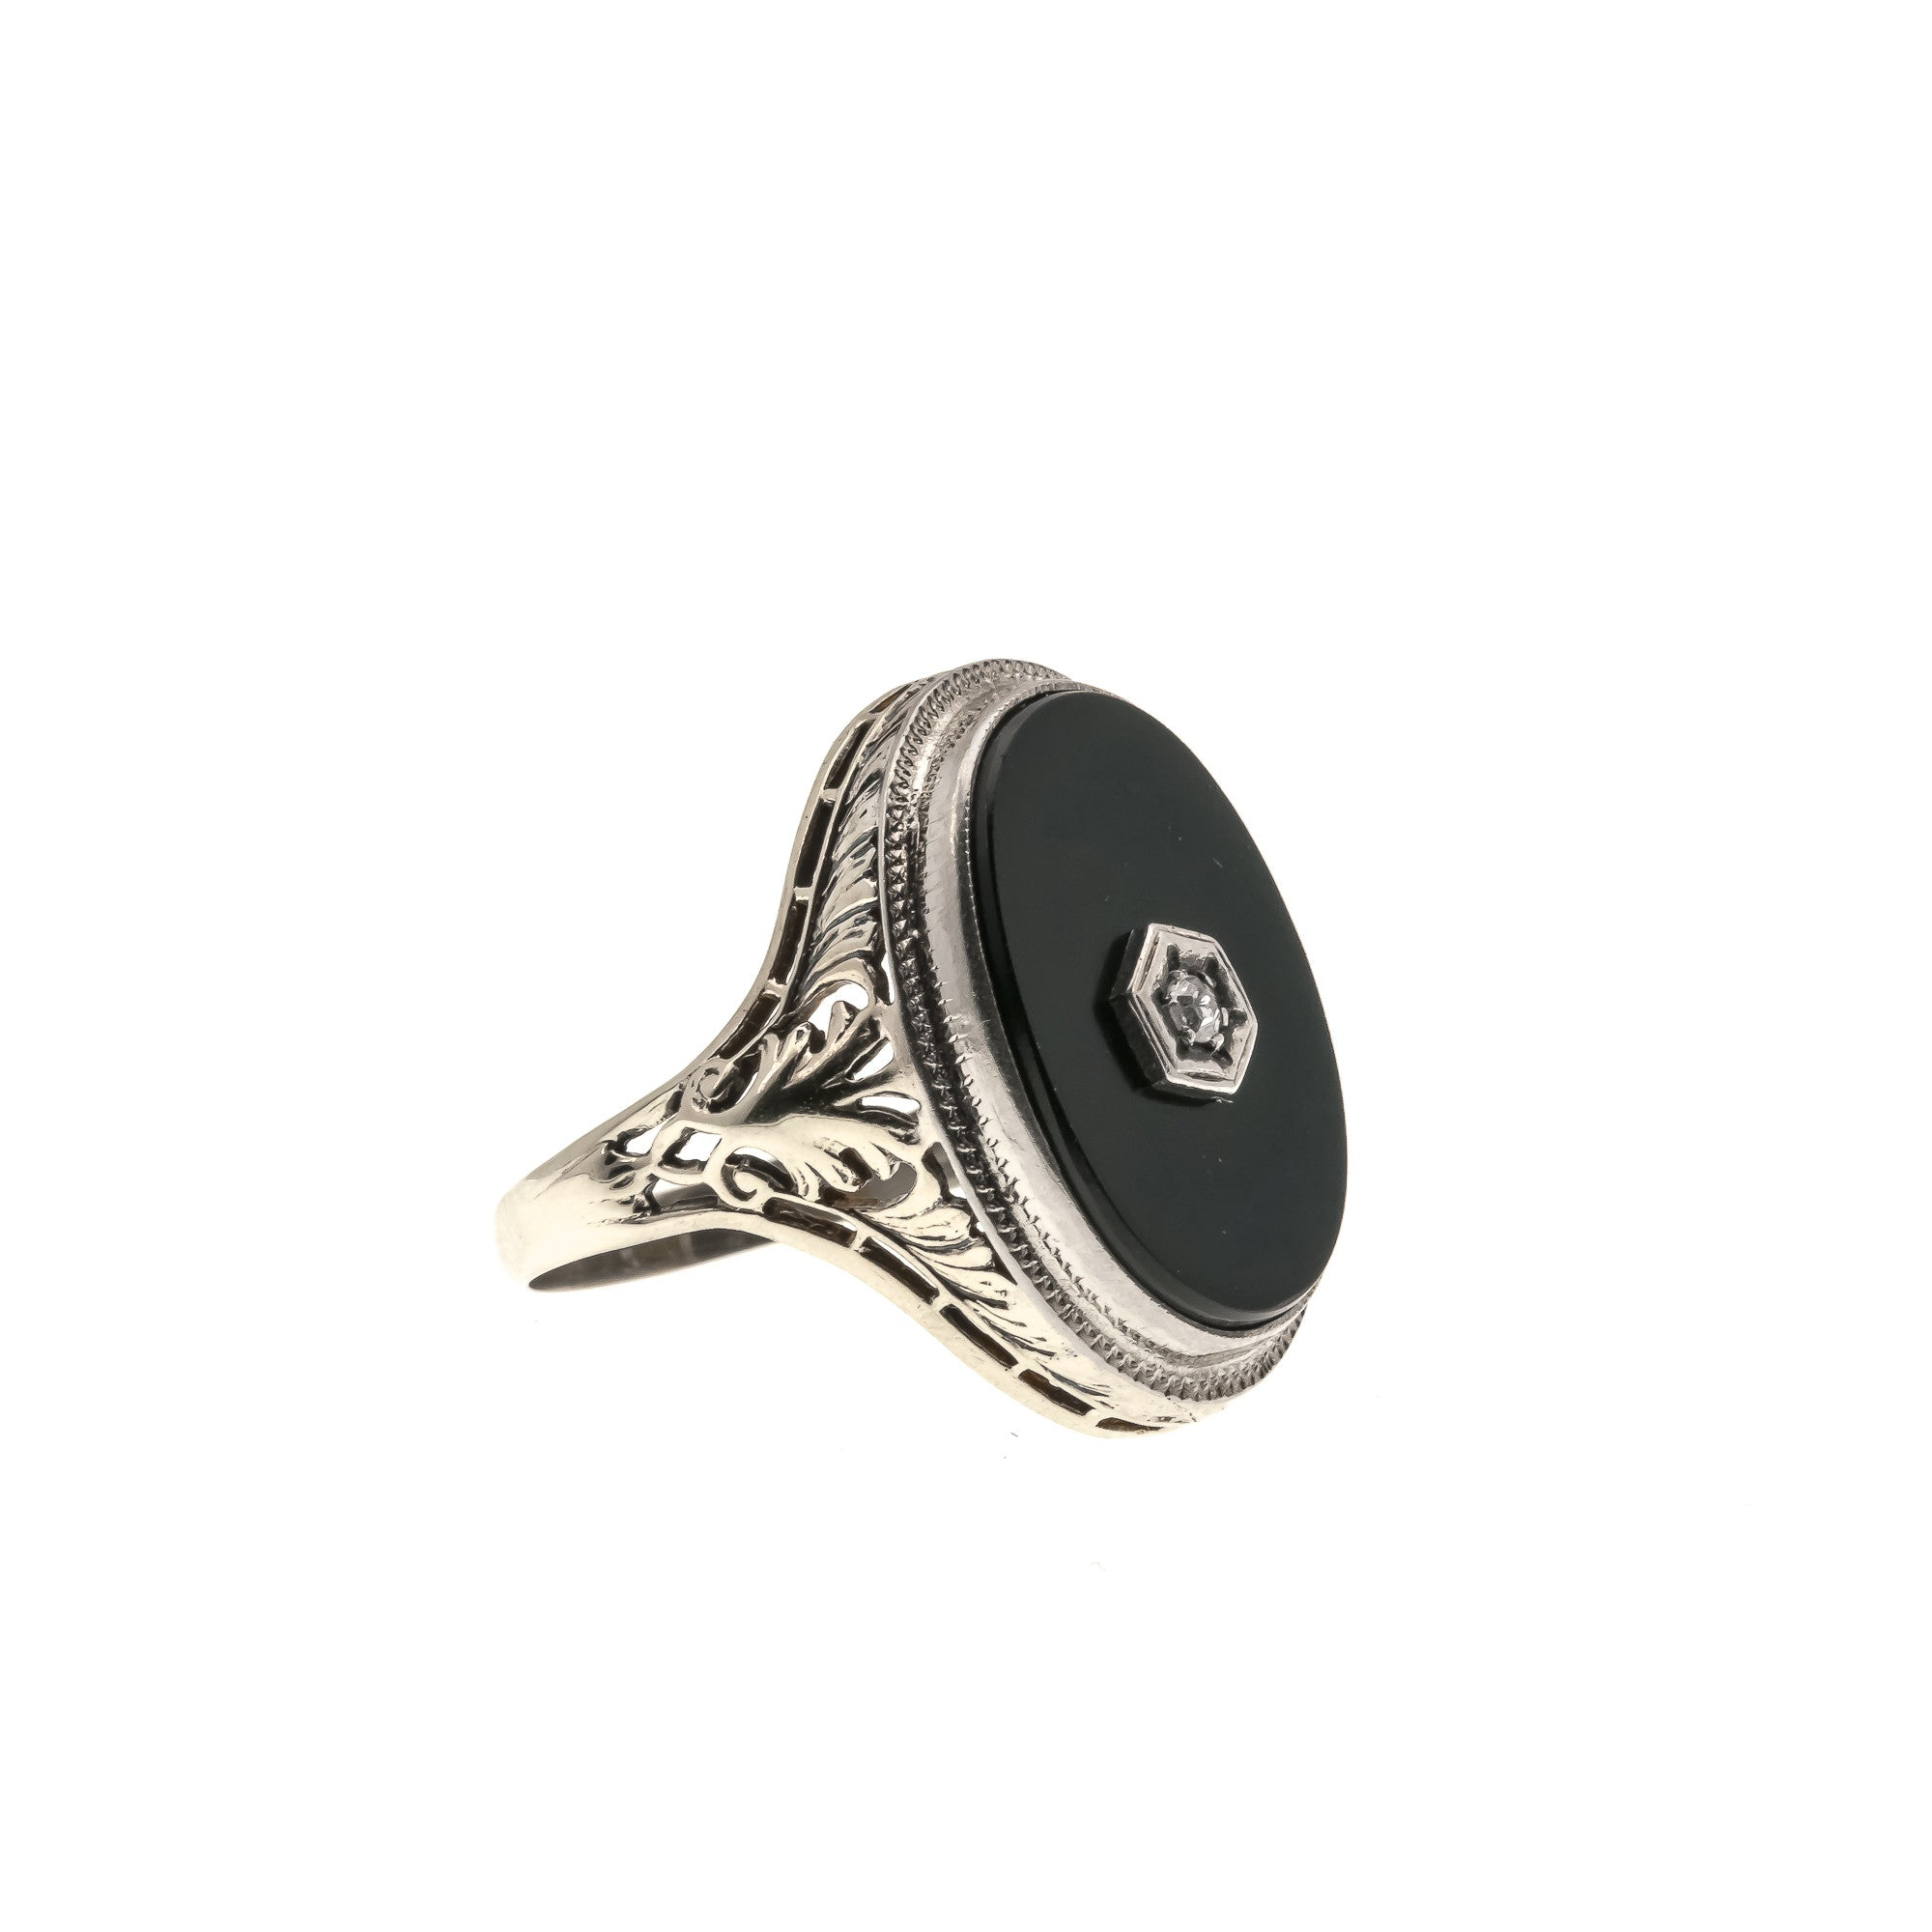 spirit gallery lyst jewelry ring modolo diamond product di rings wedding black in onyx